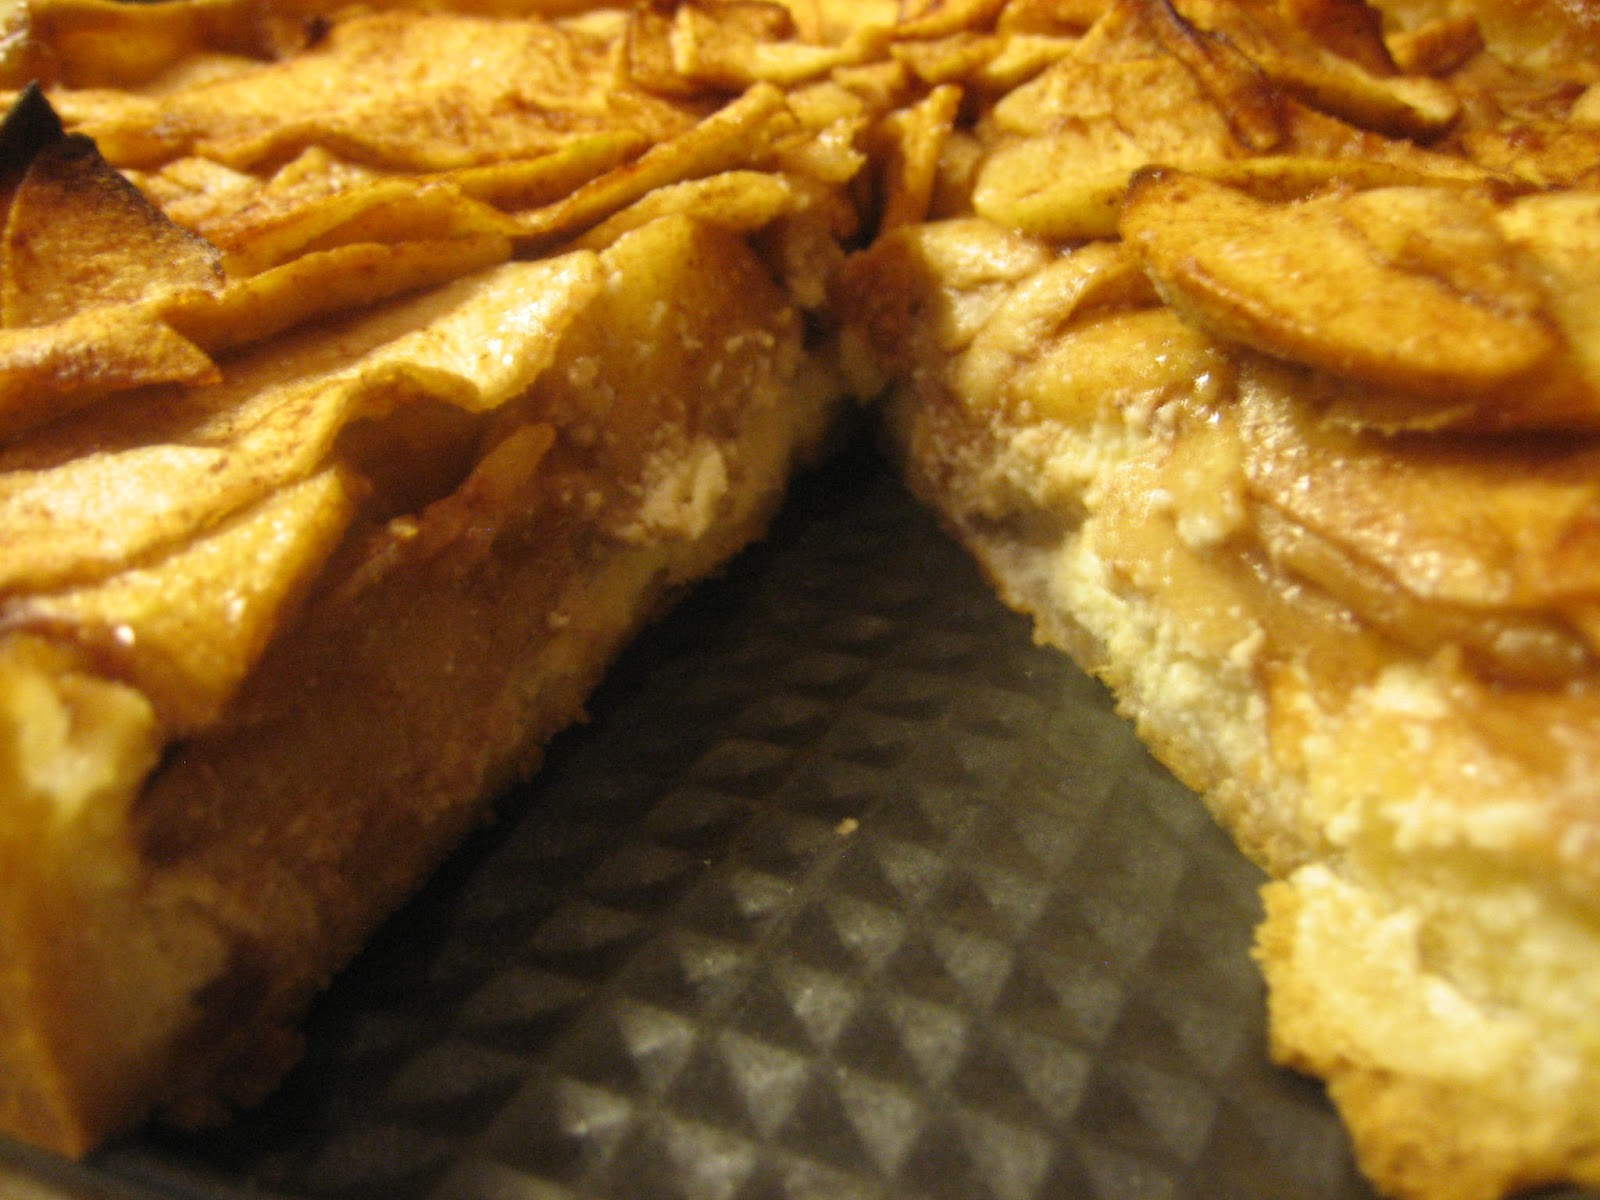 Watch Ricotta Cheesecake With Caramelized Apples video